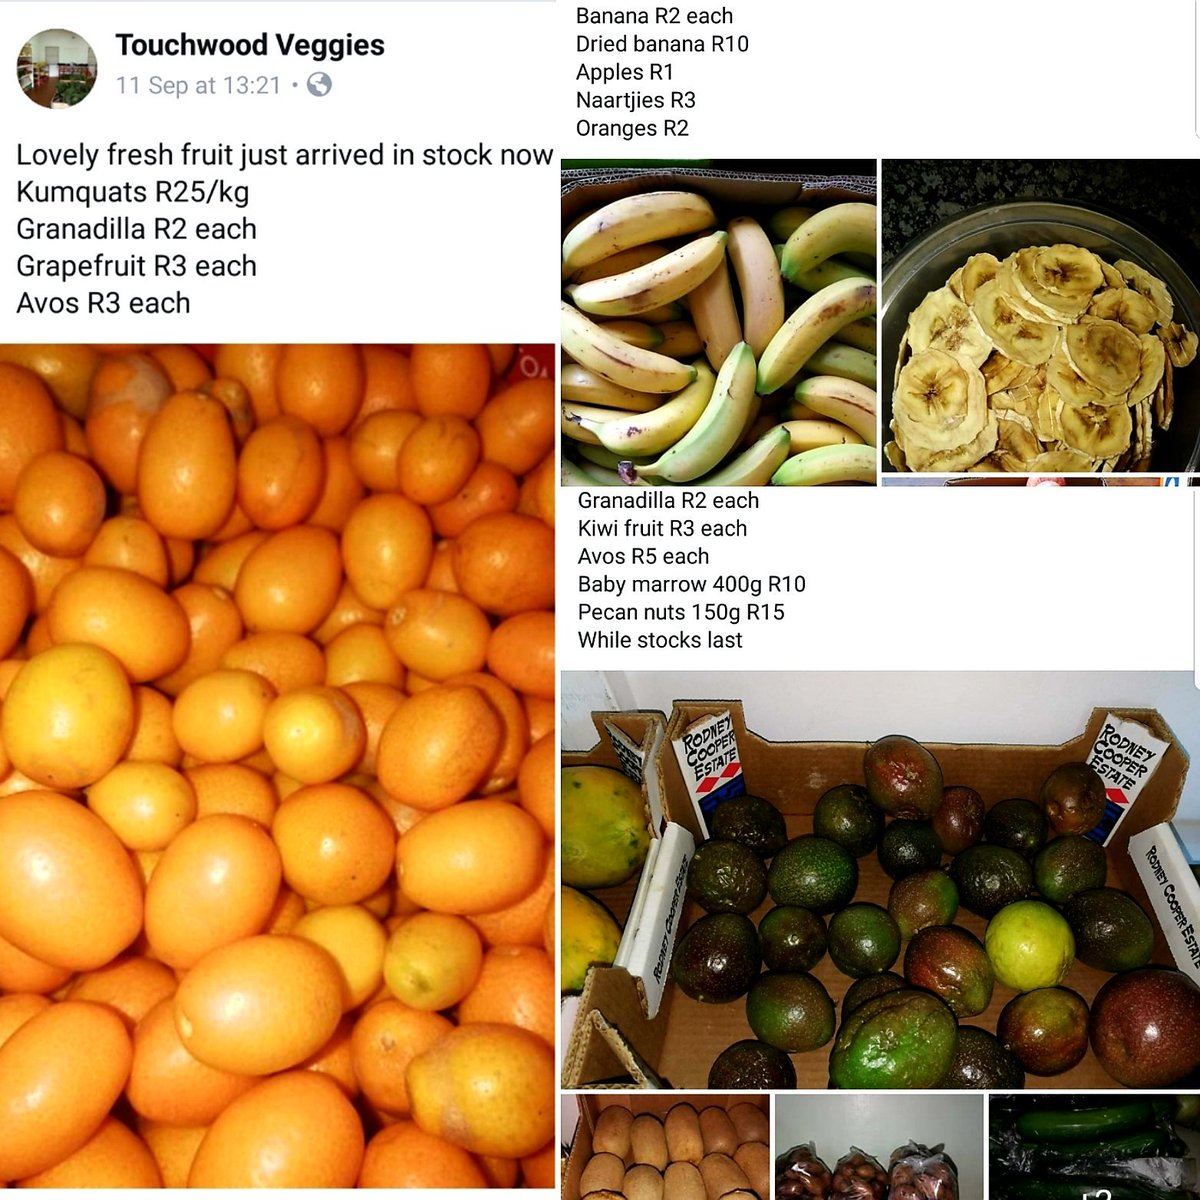 Touchwood Veggies in Howick/Merrivale in the #KwaZulunatal Midlands - nice &amp; excellent price    https://www. facebook.com/touchwoodveggi es/ &nbsp; …   A3 #TravelChatSA  <br>http://pic.twitter.com/wAApssSICH